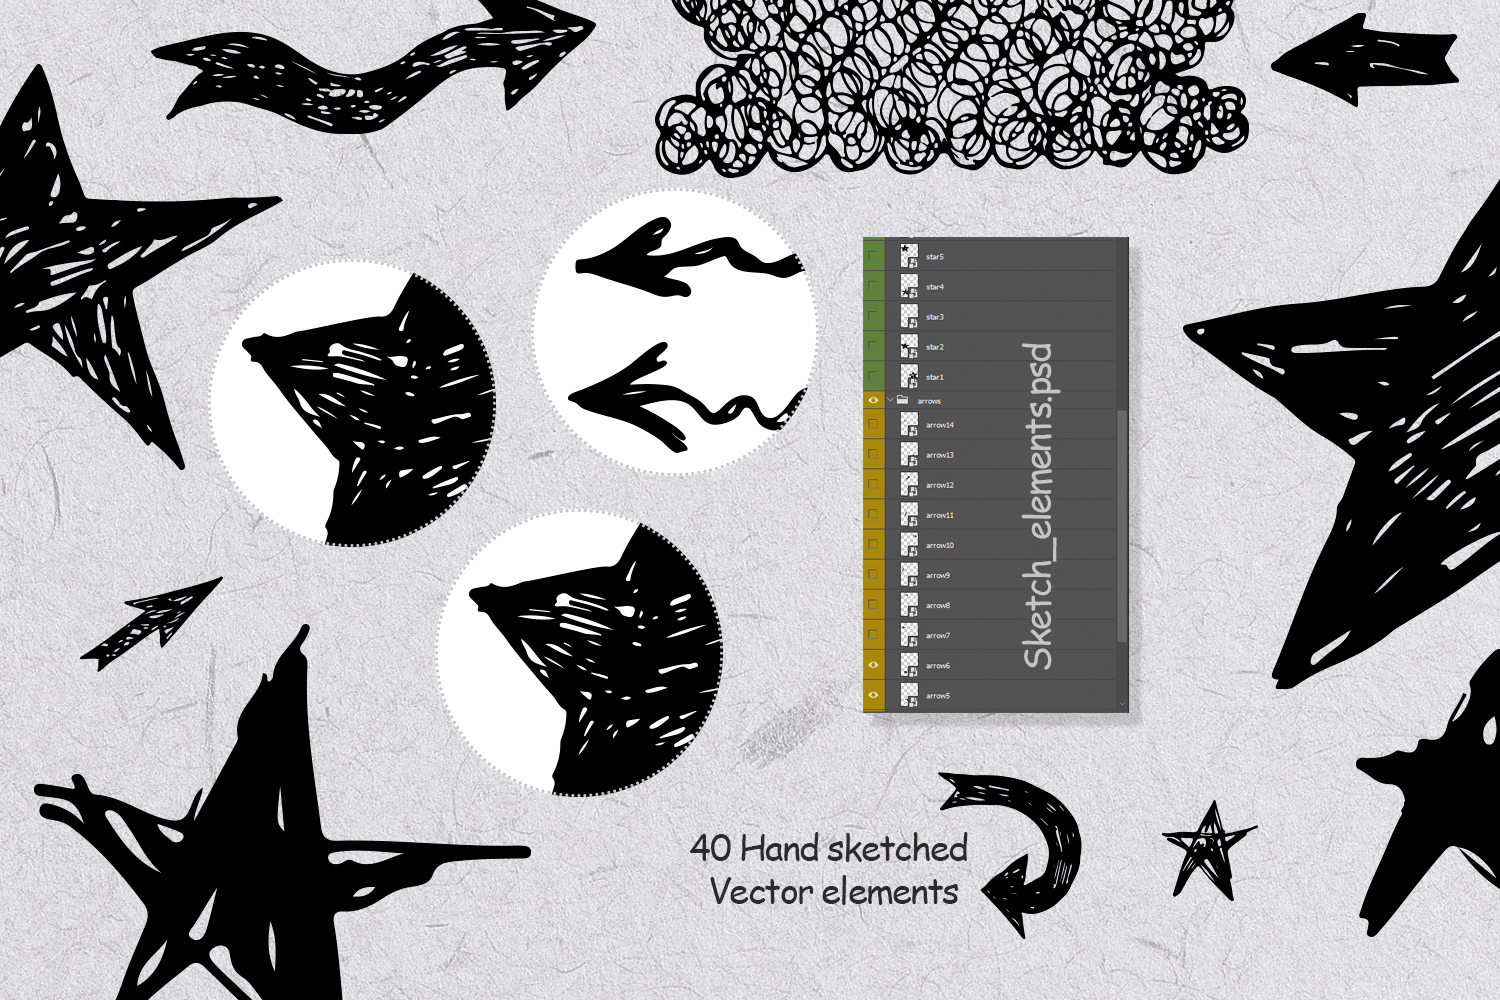 Handsketched Vector elements/arrows/stars example image 3